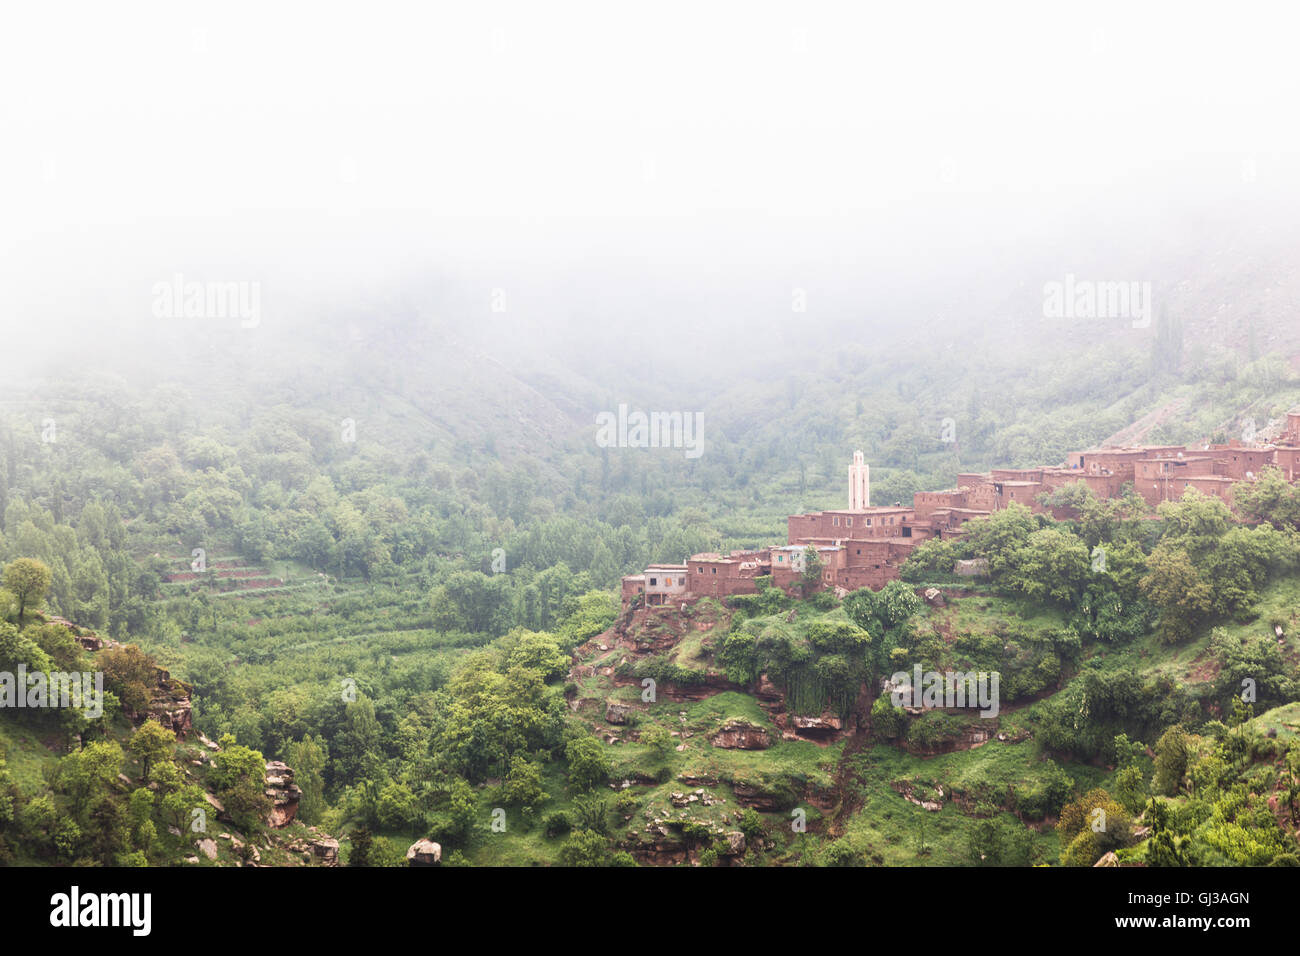 Misty landscape view of hillside village,  Ourika Valley, Marrakech, Morocco - Stock Image